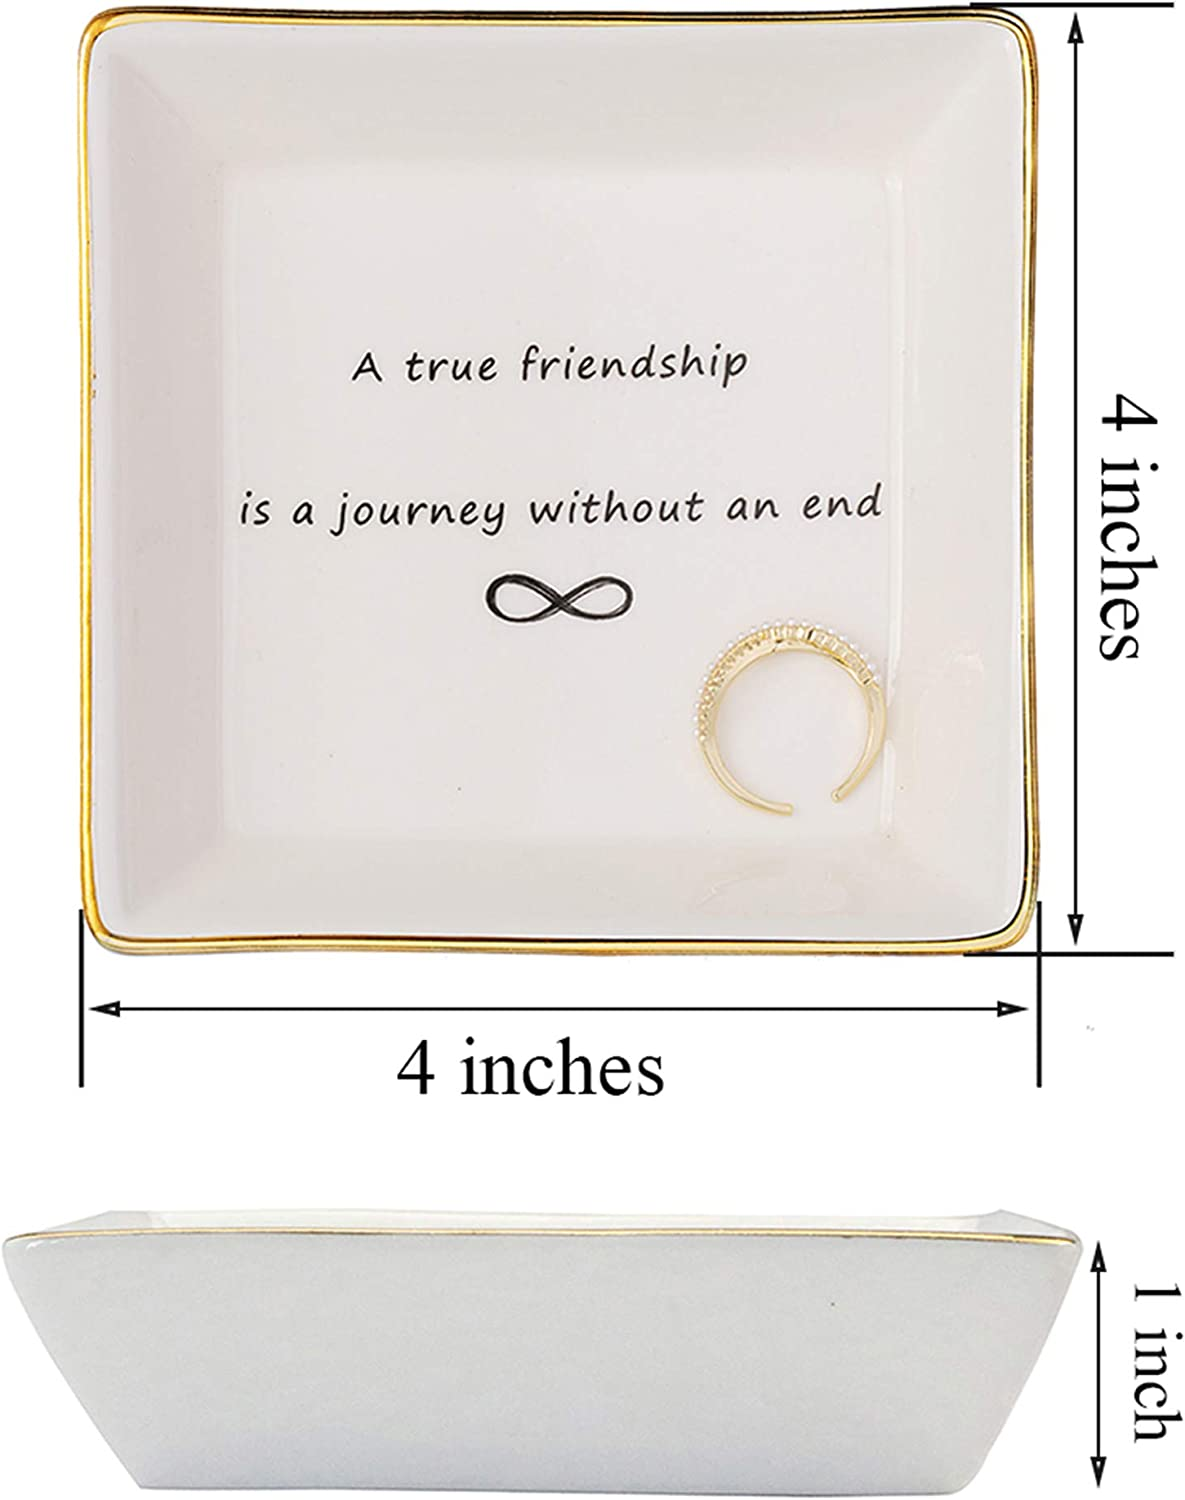 Joycuff Friend Jewelry Dish Home Decor Trinket Dish Best Friendship Gifts-Cute Classy Fashion Gifts for Birthday Chrismas Women Men